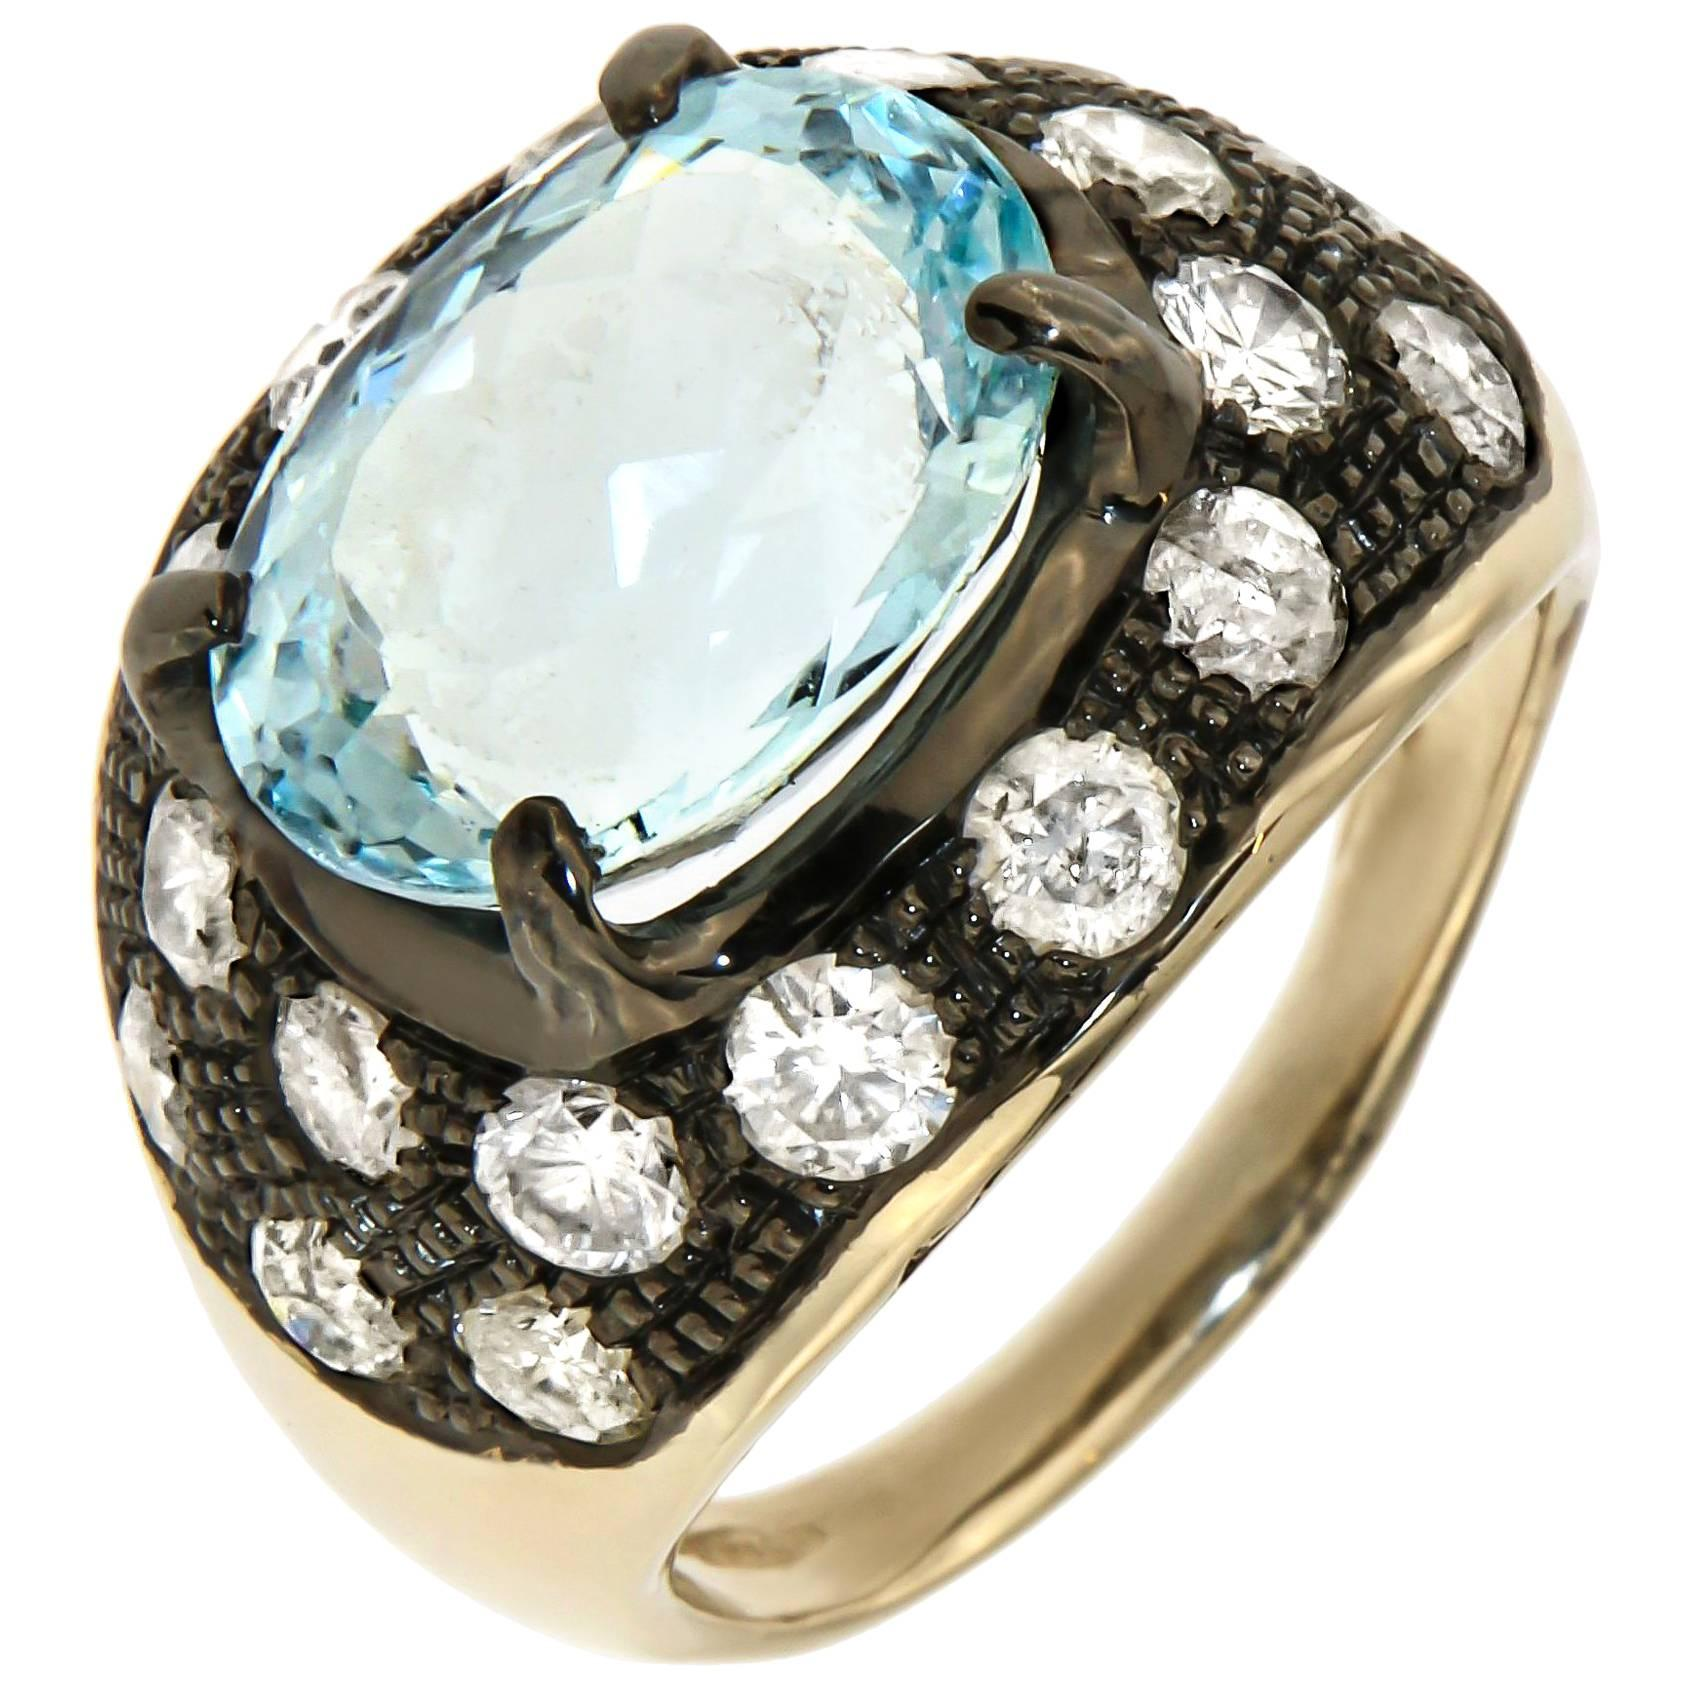 Aquamarine Ice Diamonds 18 Karat White Gold Cocktail Ring Handcrafted in Italy